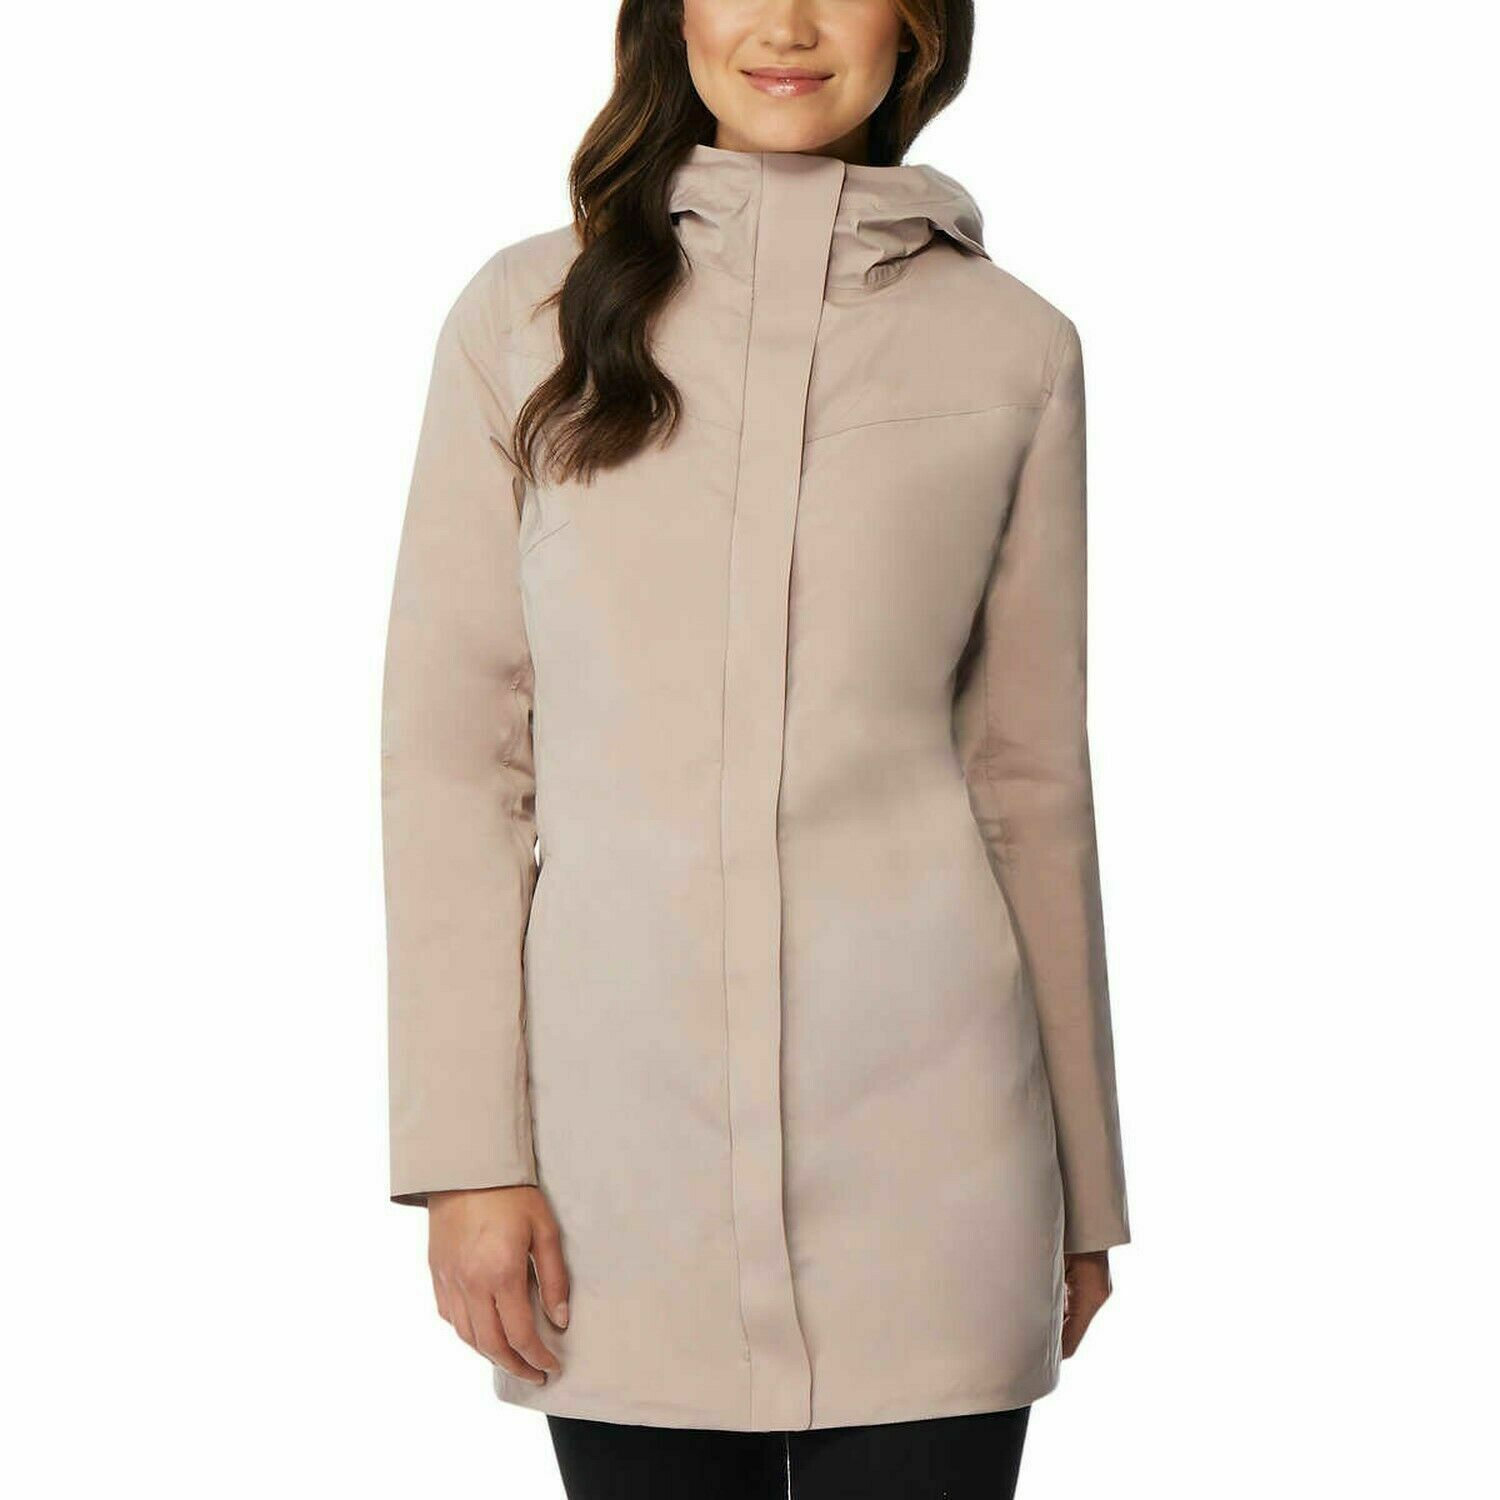 NWT 32 Degrees Heat Ladies' Waterproof Winter Jacket, Light